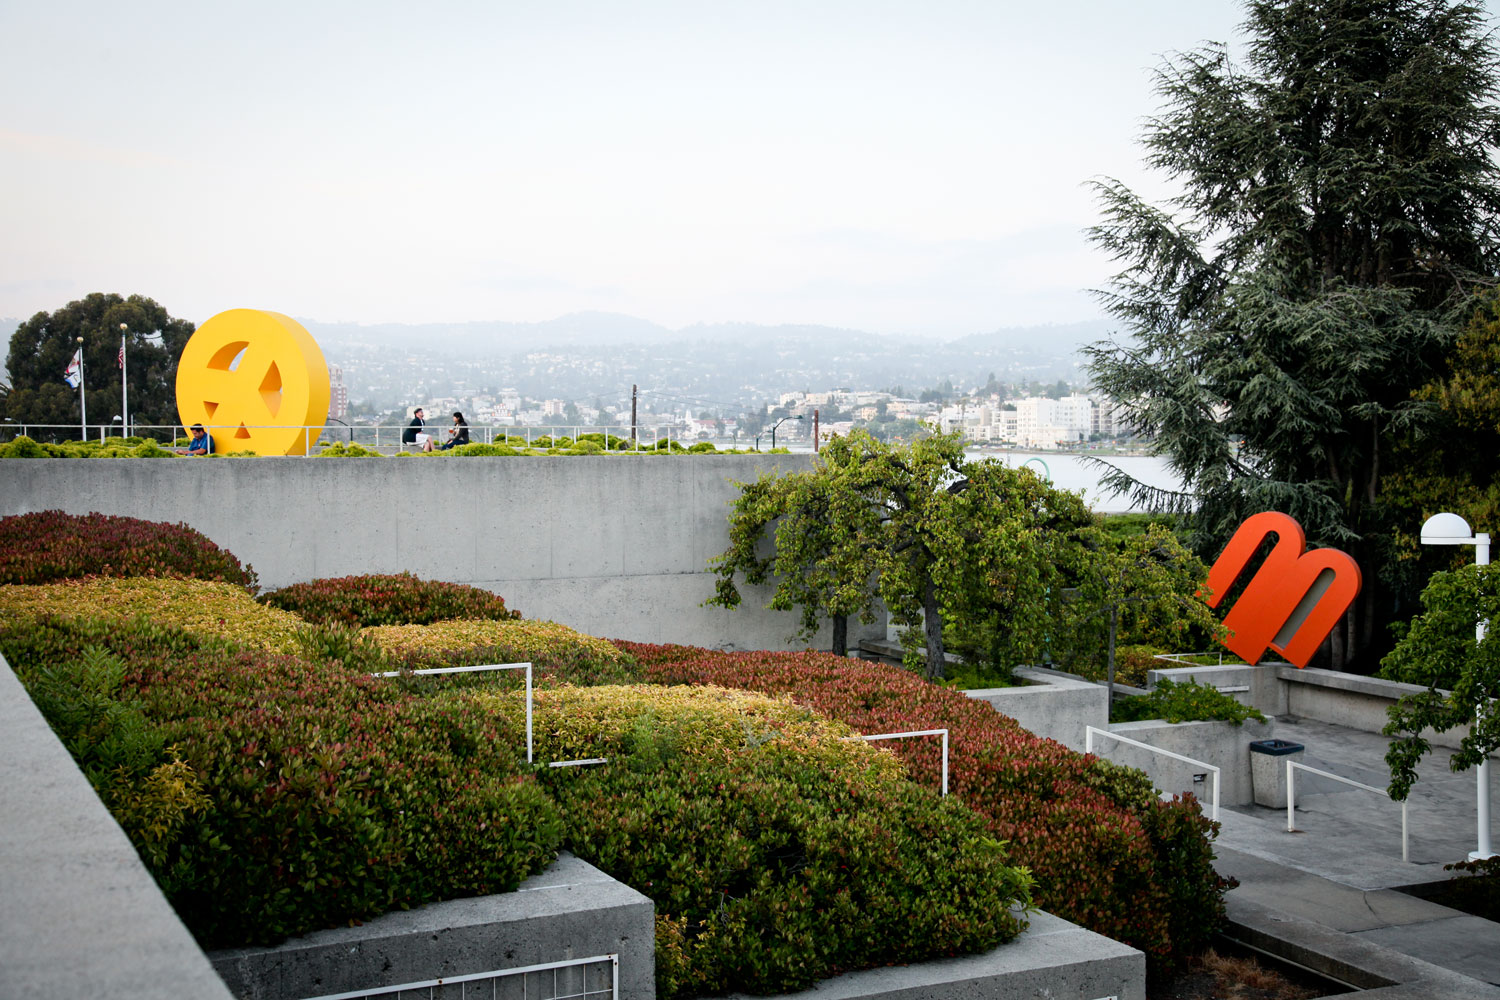 View of Lake Merritt and the famous peace sign sculpture at OMCA